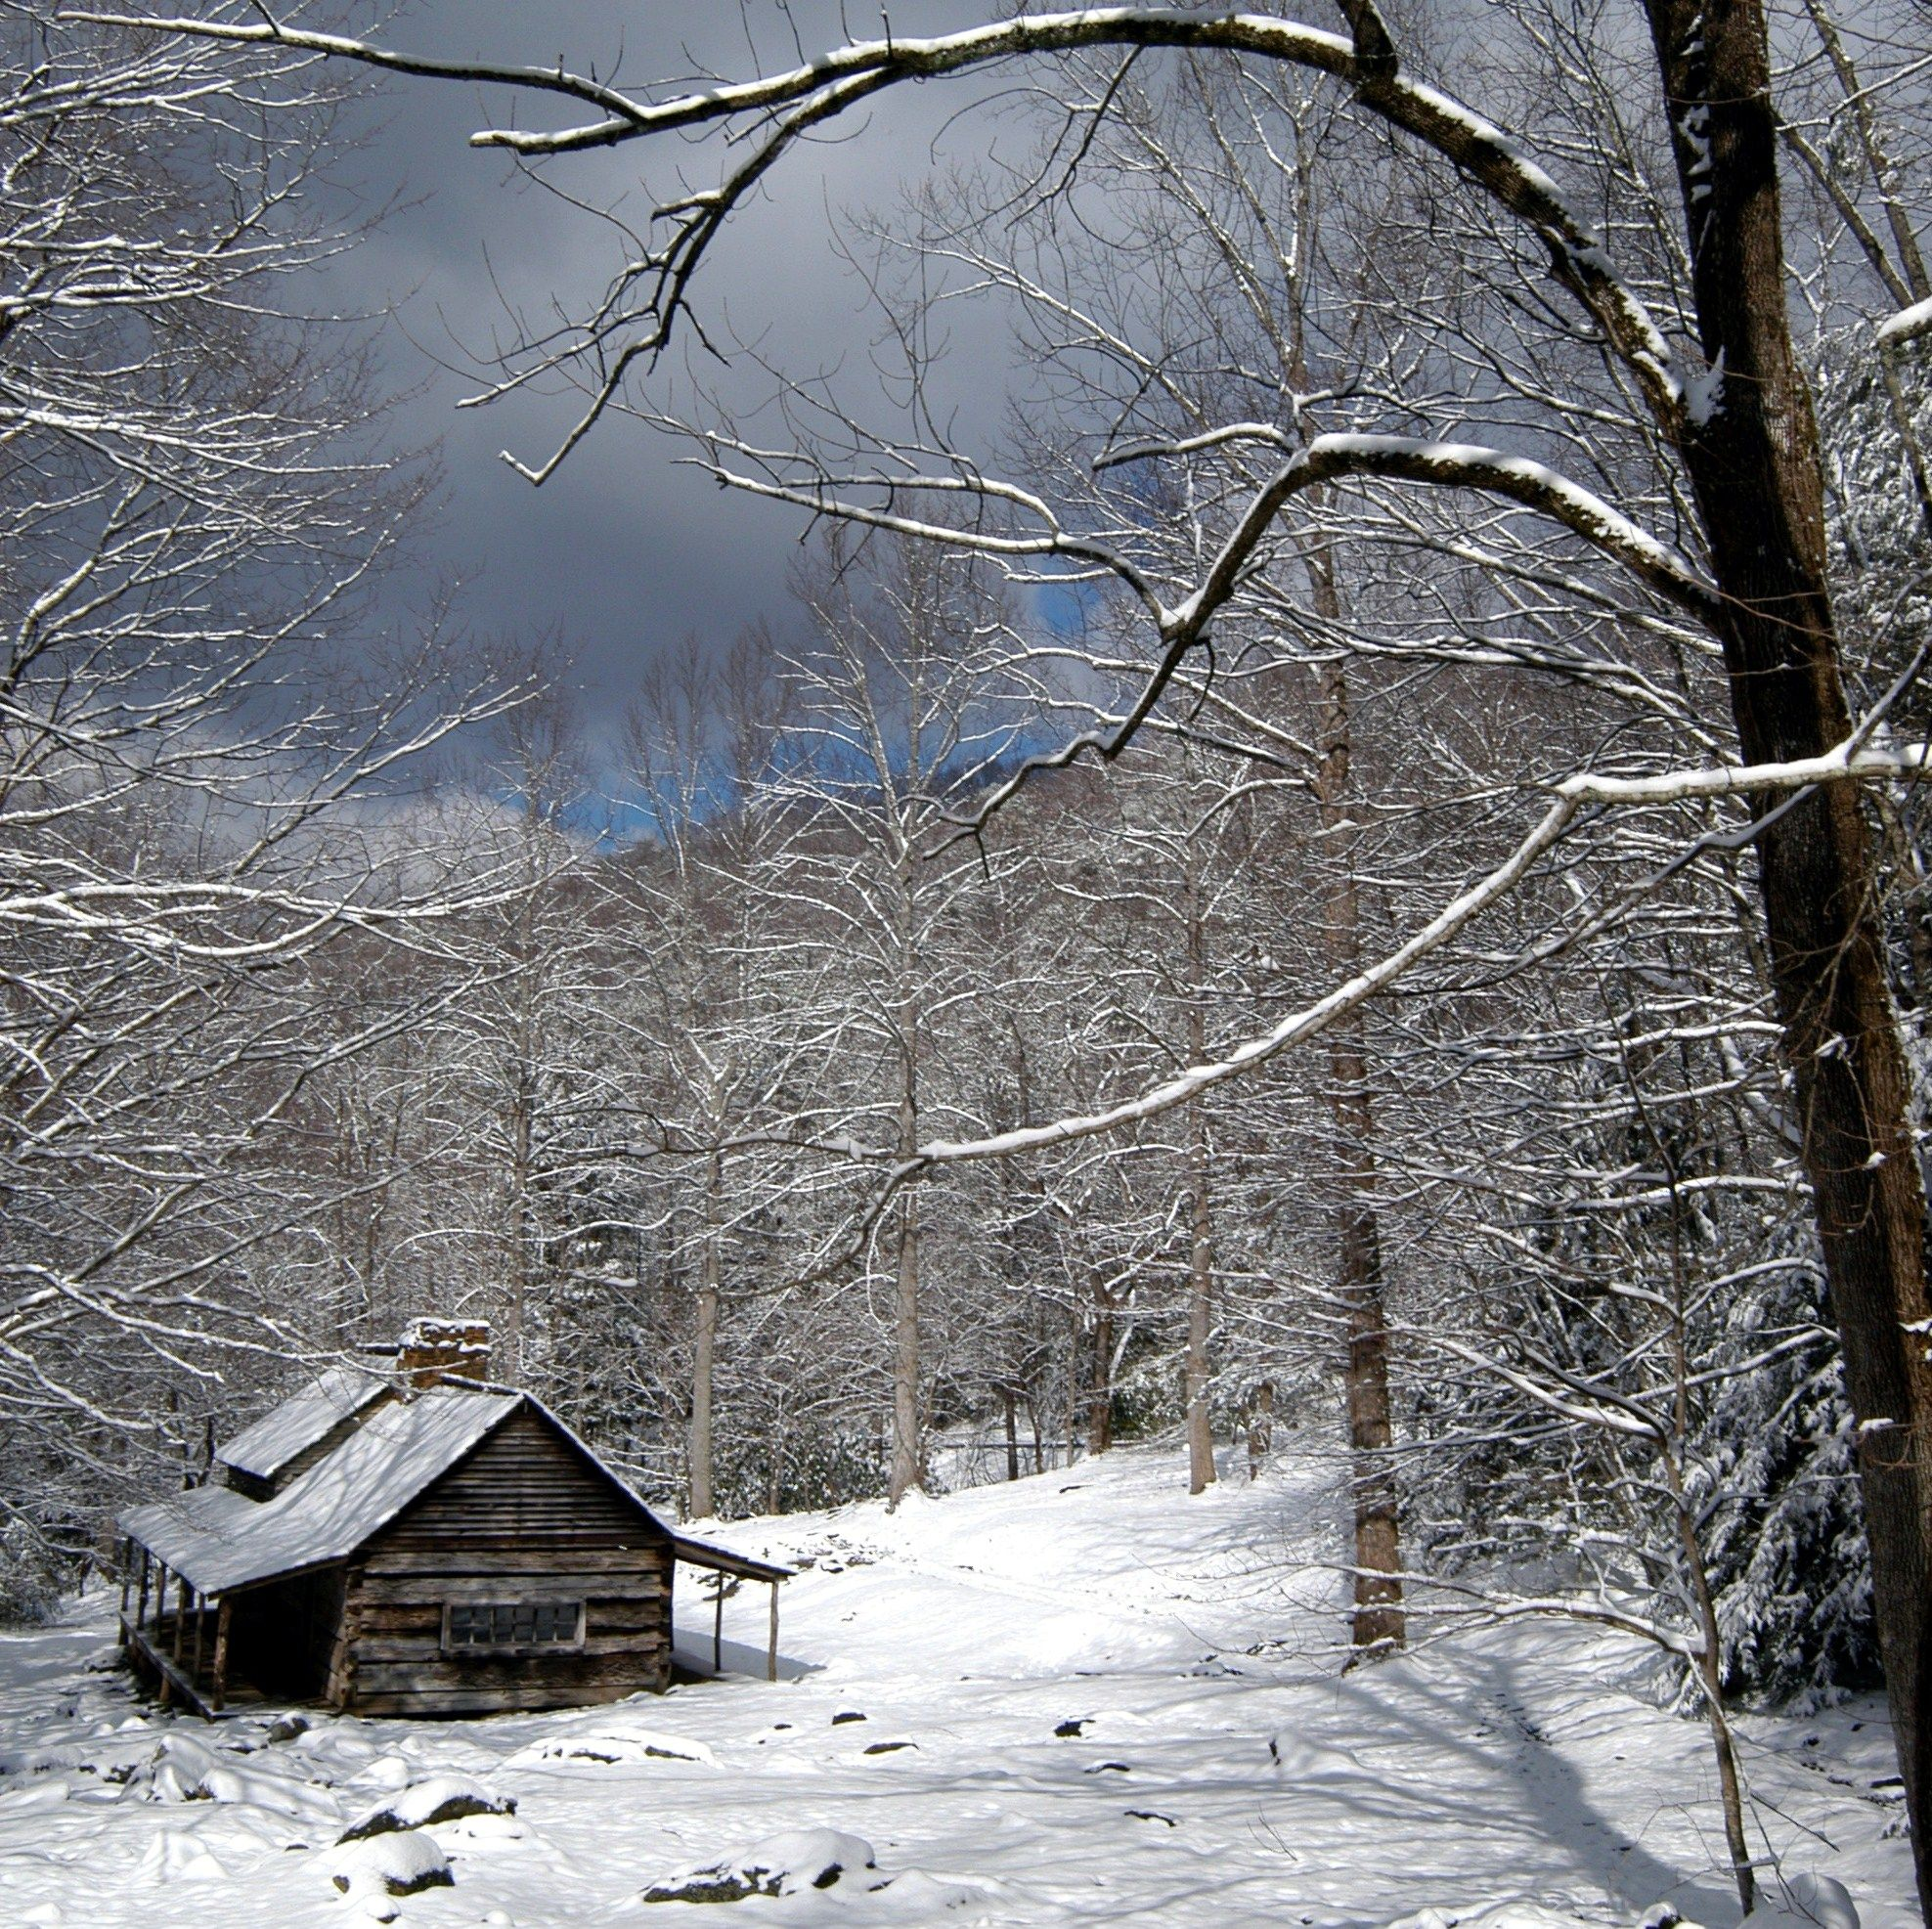 Winter is like a wonderland when it comes to the Smokies.